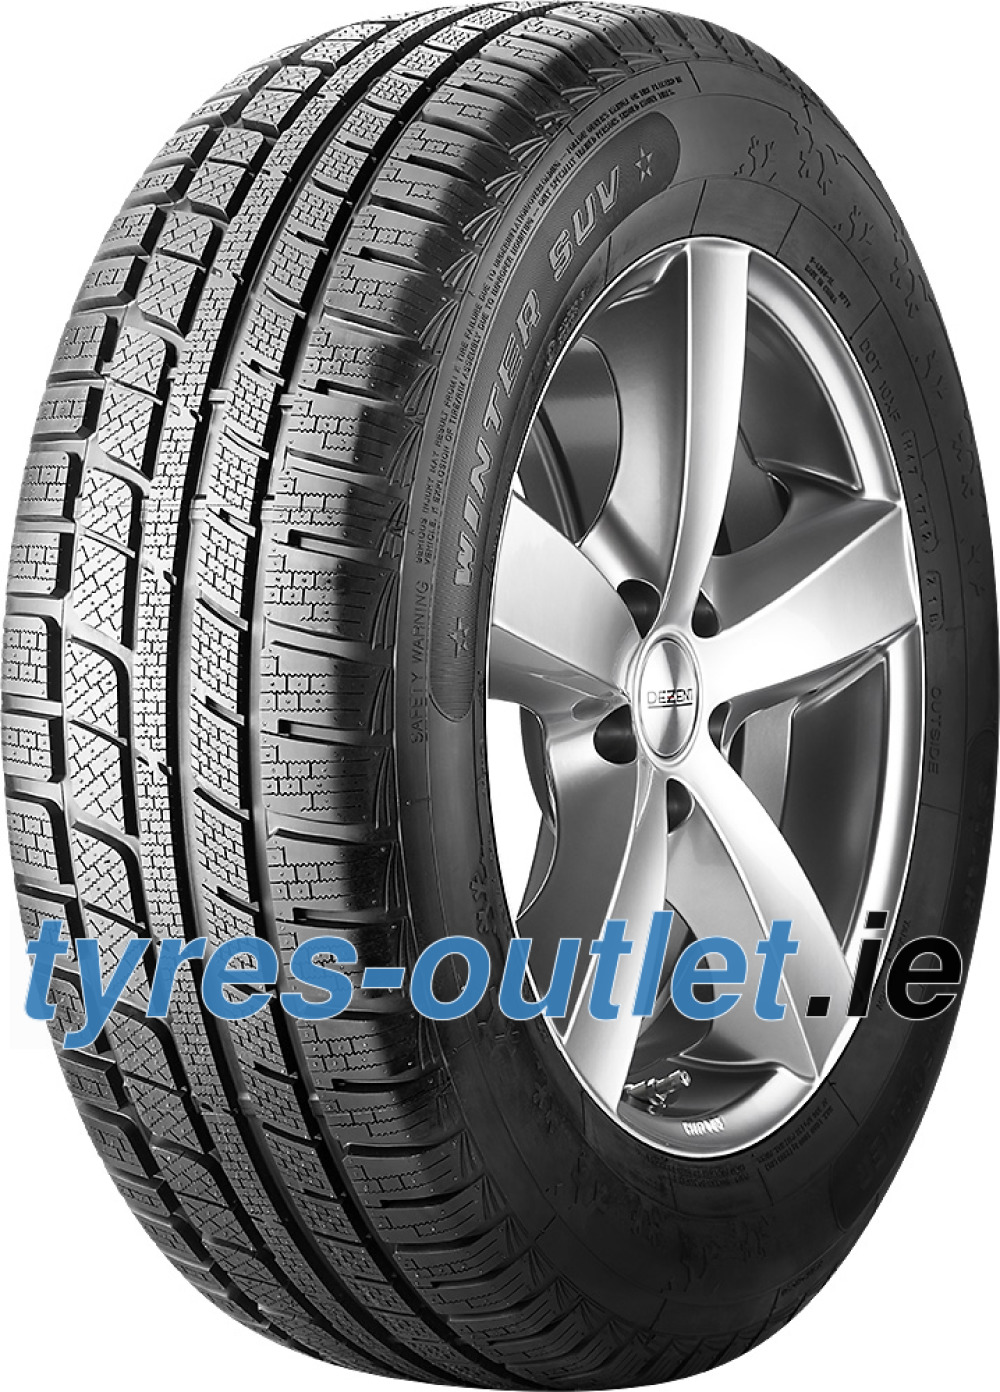 Star Performer SPTV ( 215/65 R16 102H XL with rim protection (MFS) )